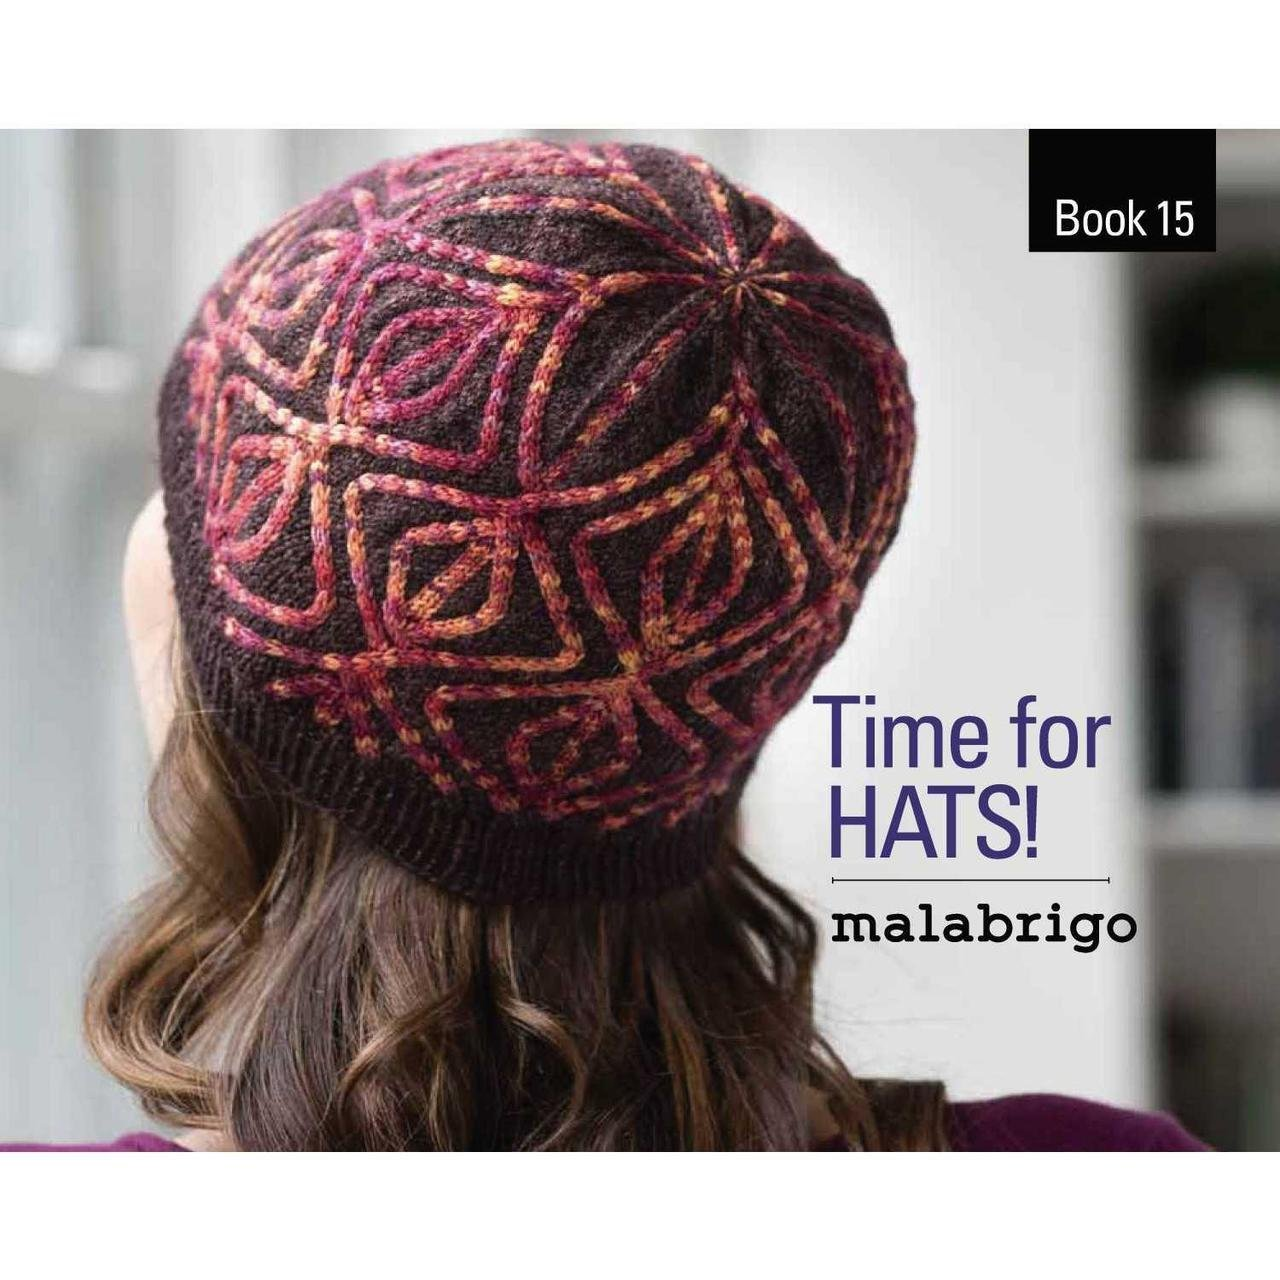 Book 15 Time for Hats